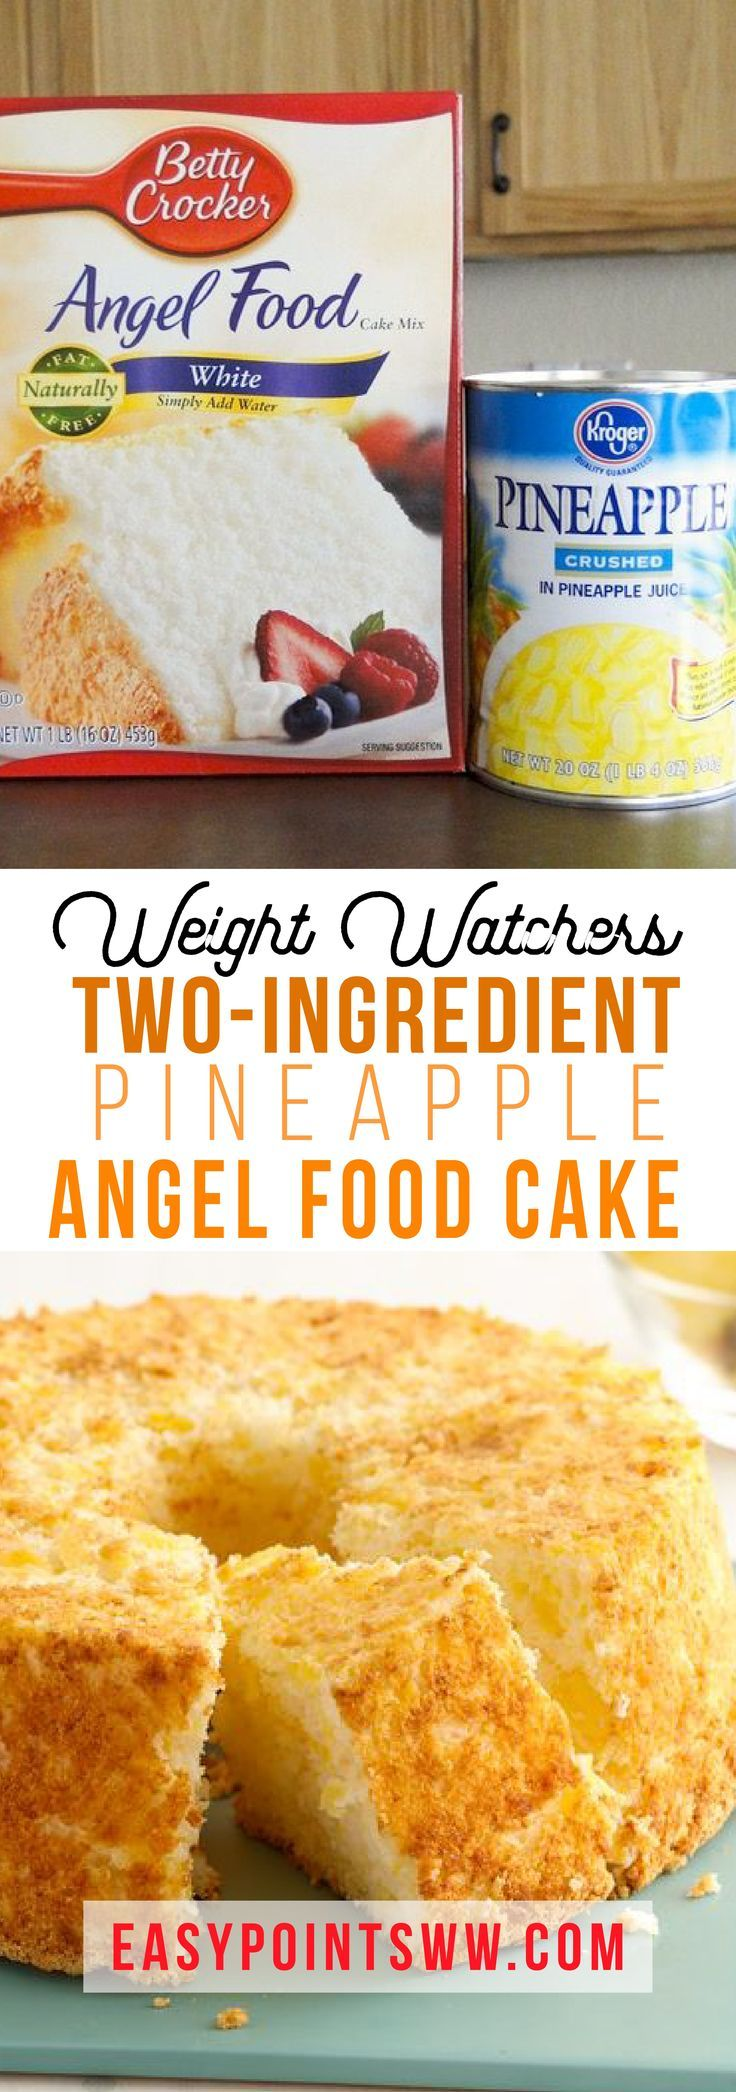 2-INGREDIENT WEIGHT WATCHERS PINEAPPLE ANGEL FOOD CAKE ?? (Lemon Bake Goods)